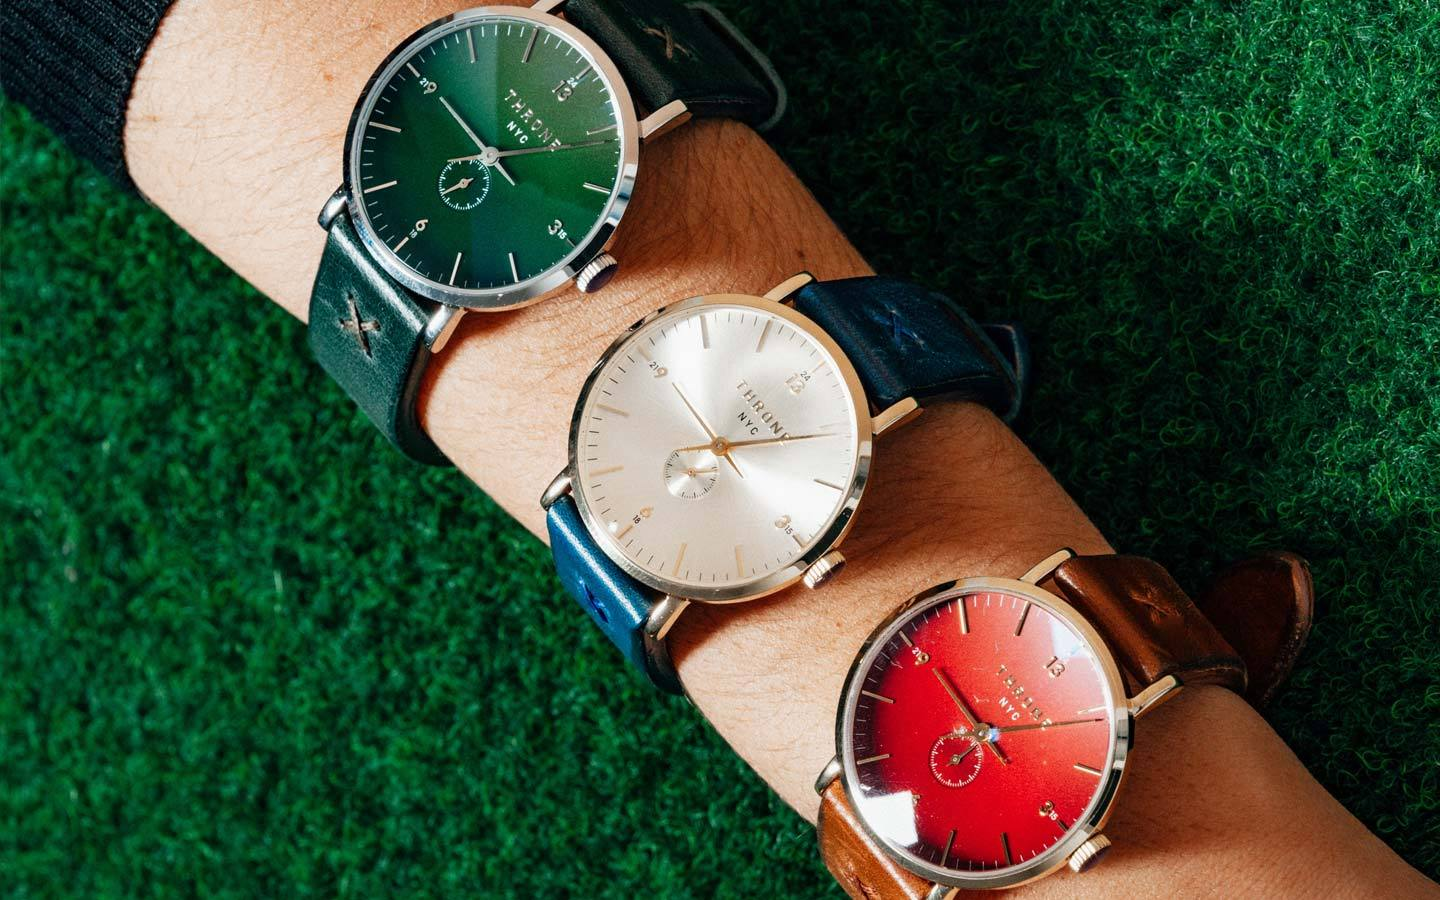 throne watches a brooklyn based accessories and time piece brand from new york on thedrop